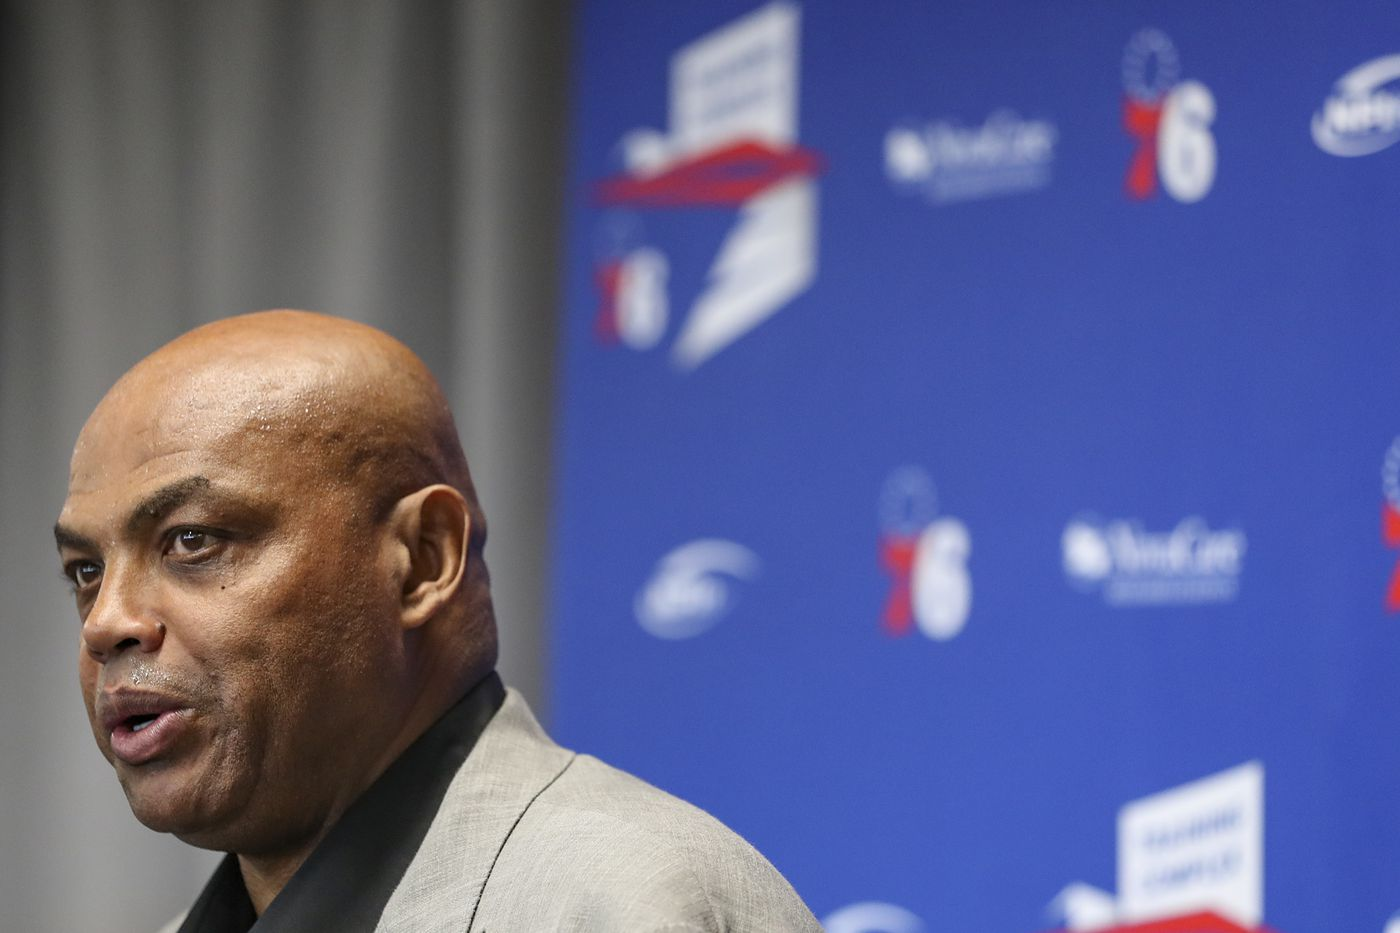 NBA Hall of Famer and former Sixers player Charles Barkley speaks at the 76ers Training Complex in Camden in September.